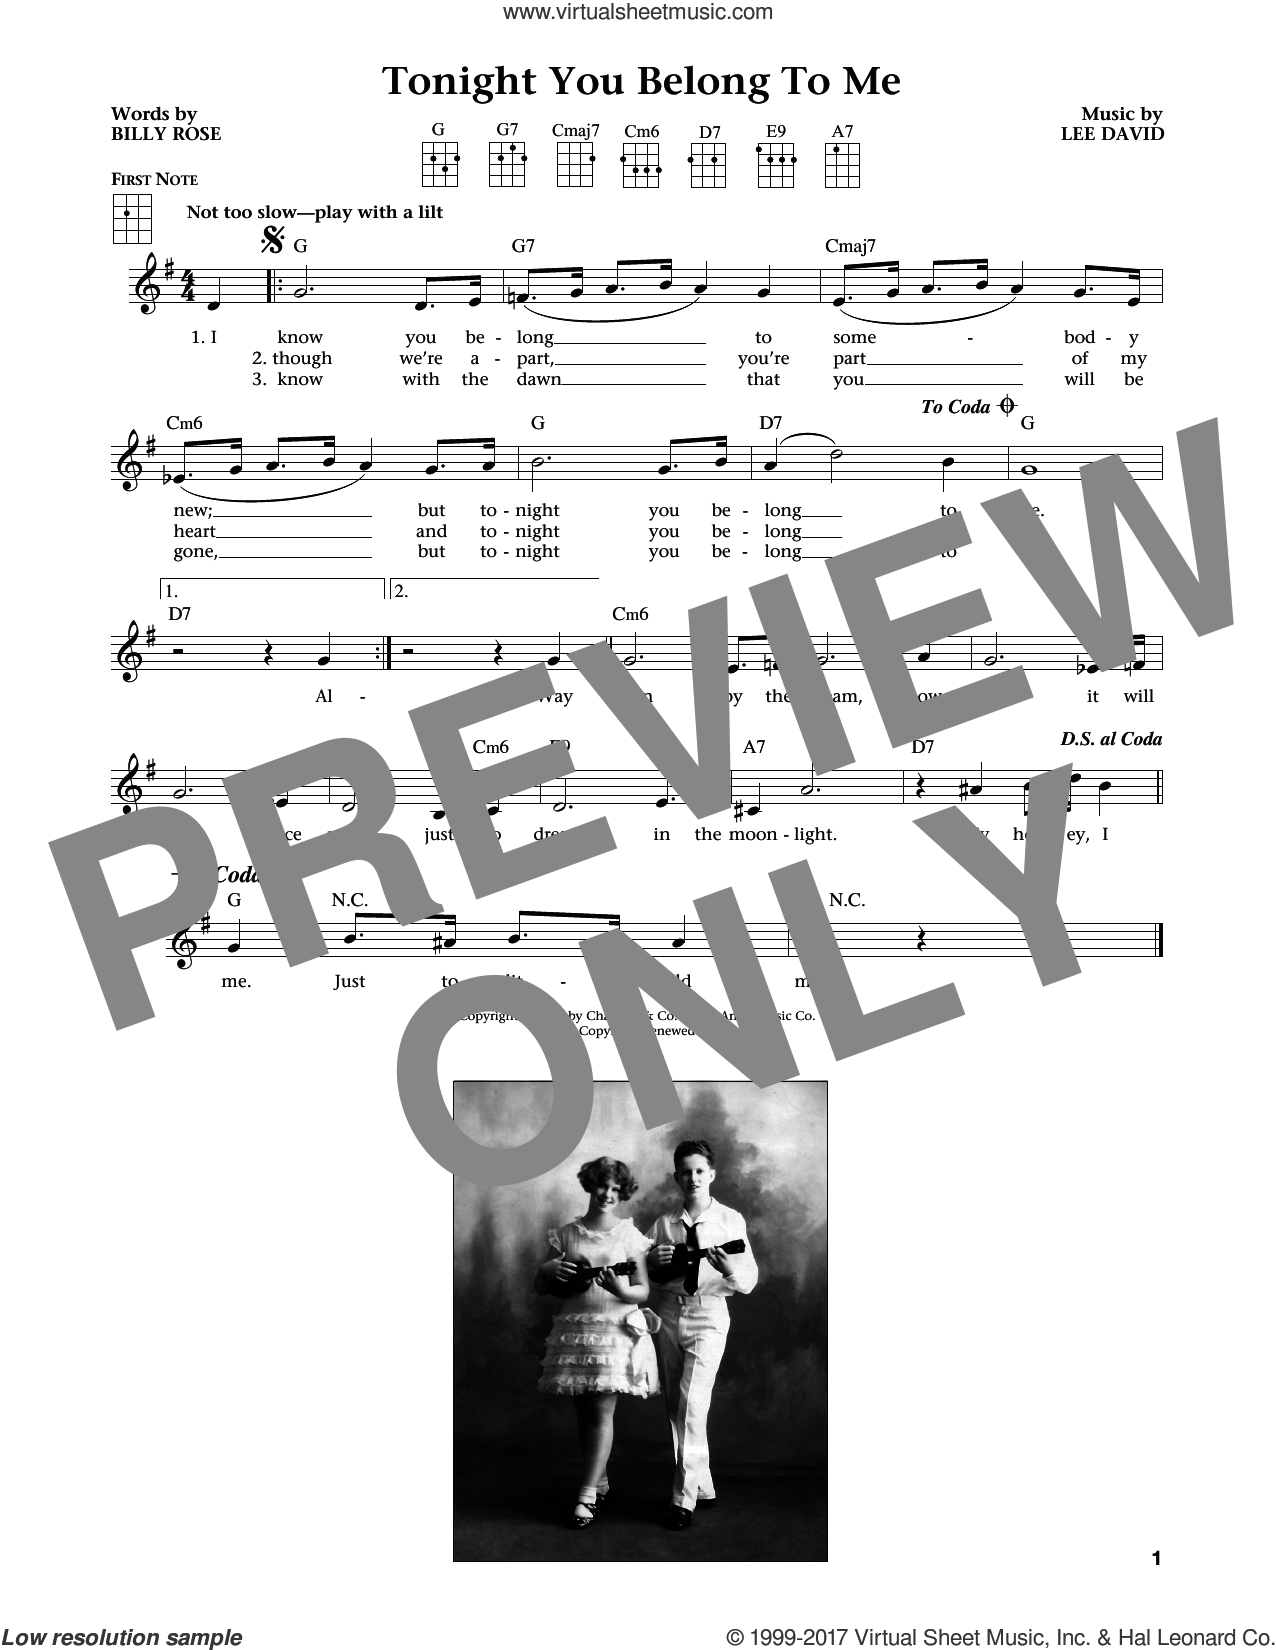 Tonight You Belong To Me (from The Daily Ukulele) (arr. Liz and Jim Beloff) sheet music for ukulele by Patience & Prudence, Jim Beloff, Liz Beloff, Billy Rose and Lee David, intermediate skill level